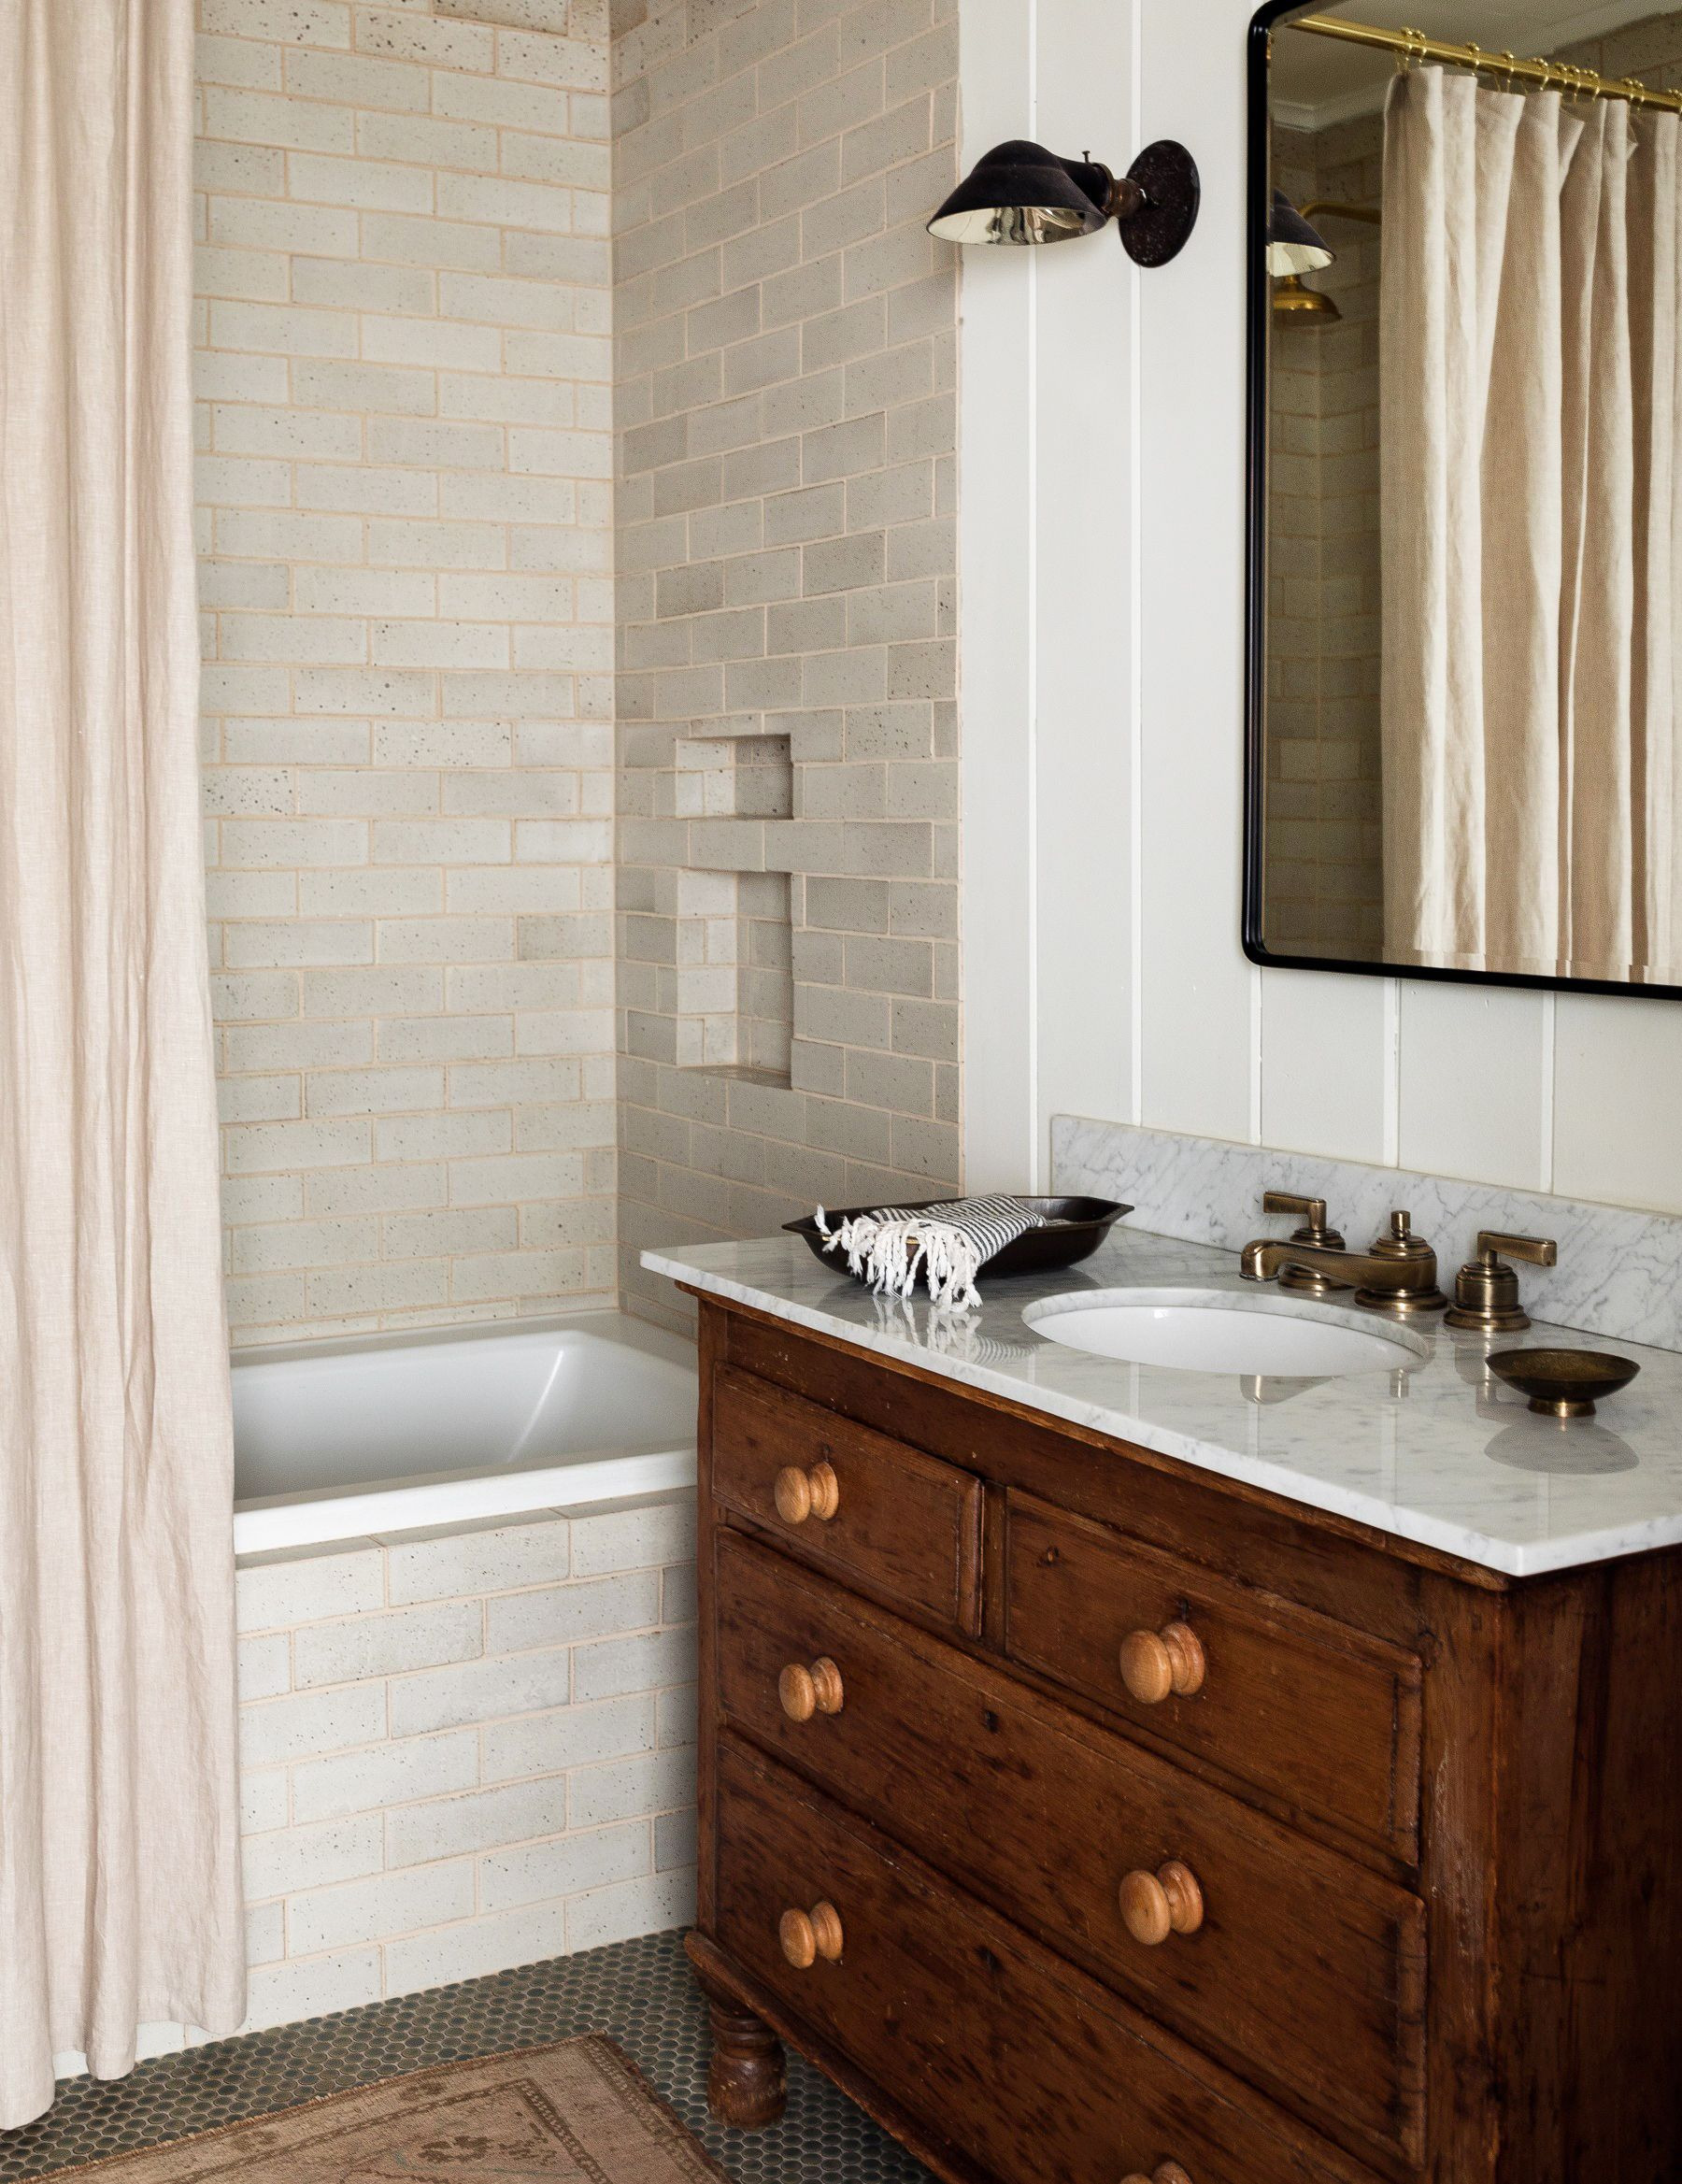 Ways to Decorate Your Bathroom Lovely 15 Best Subway Tile Bathroom Designs In 2020 Subway Tile